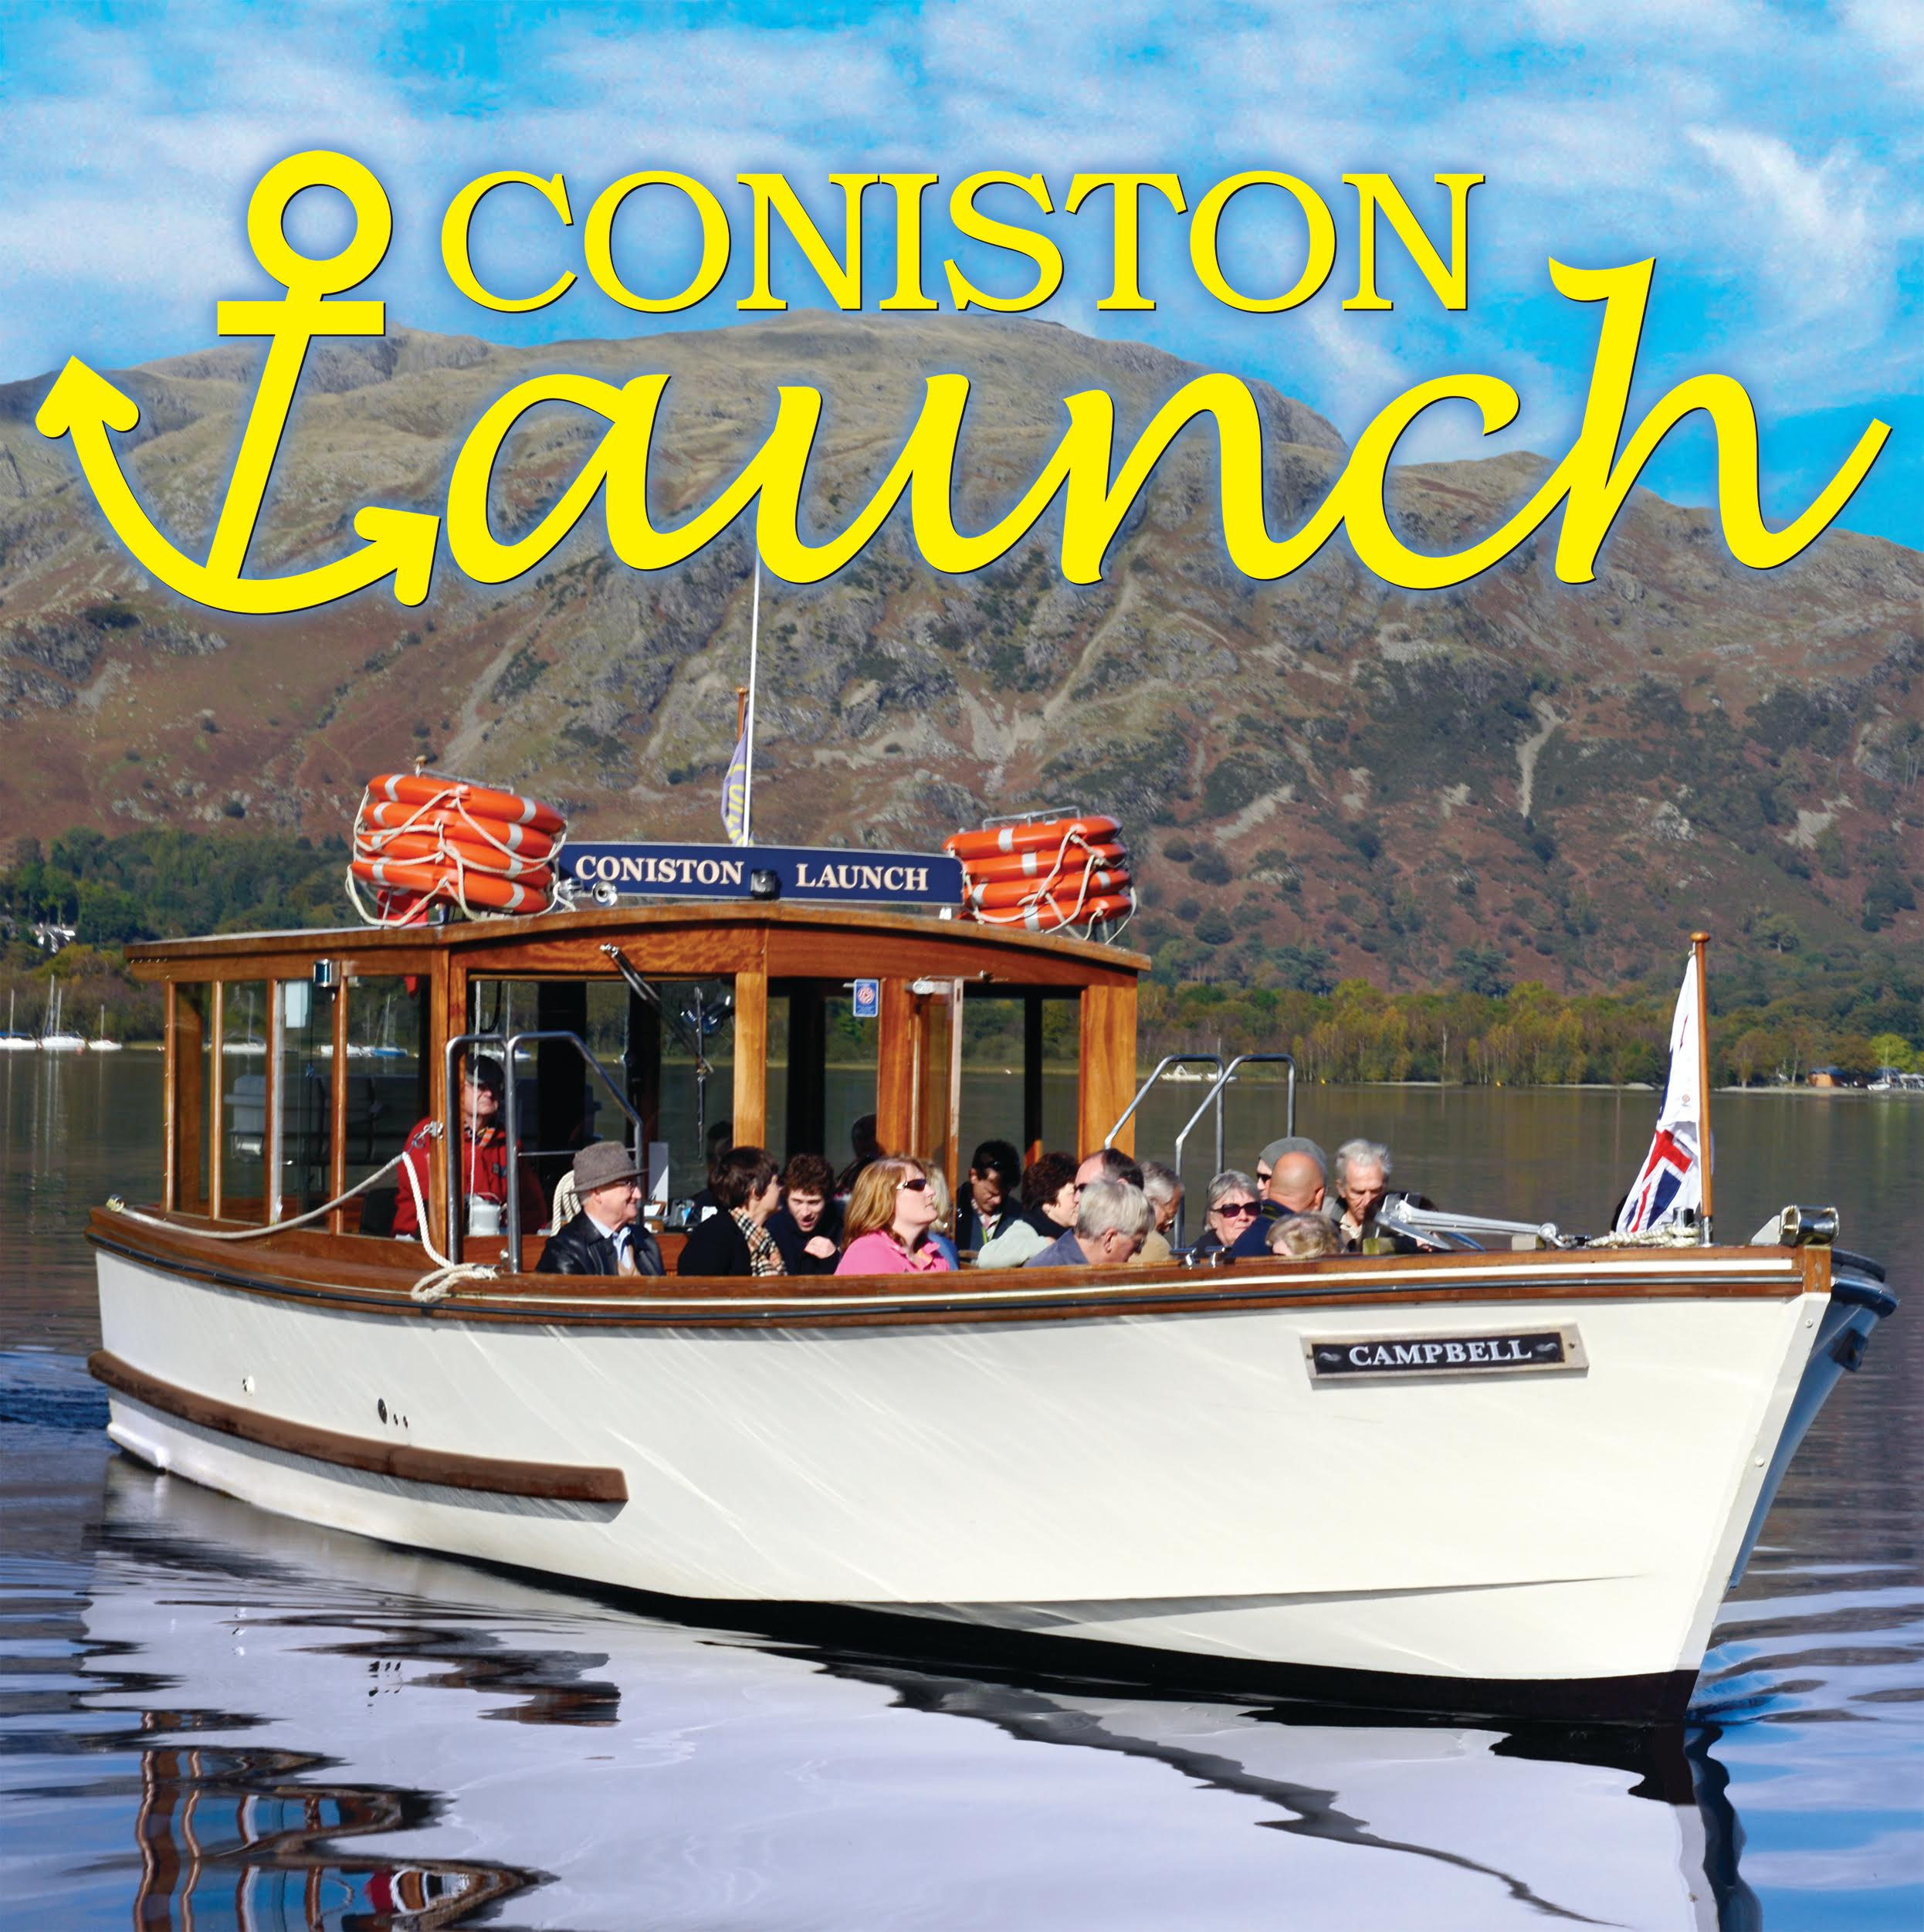 Coniston_Launch_Logo_Square_v2_1593793904.jpg